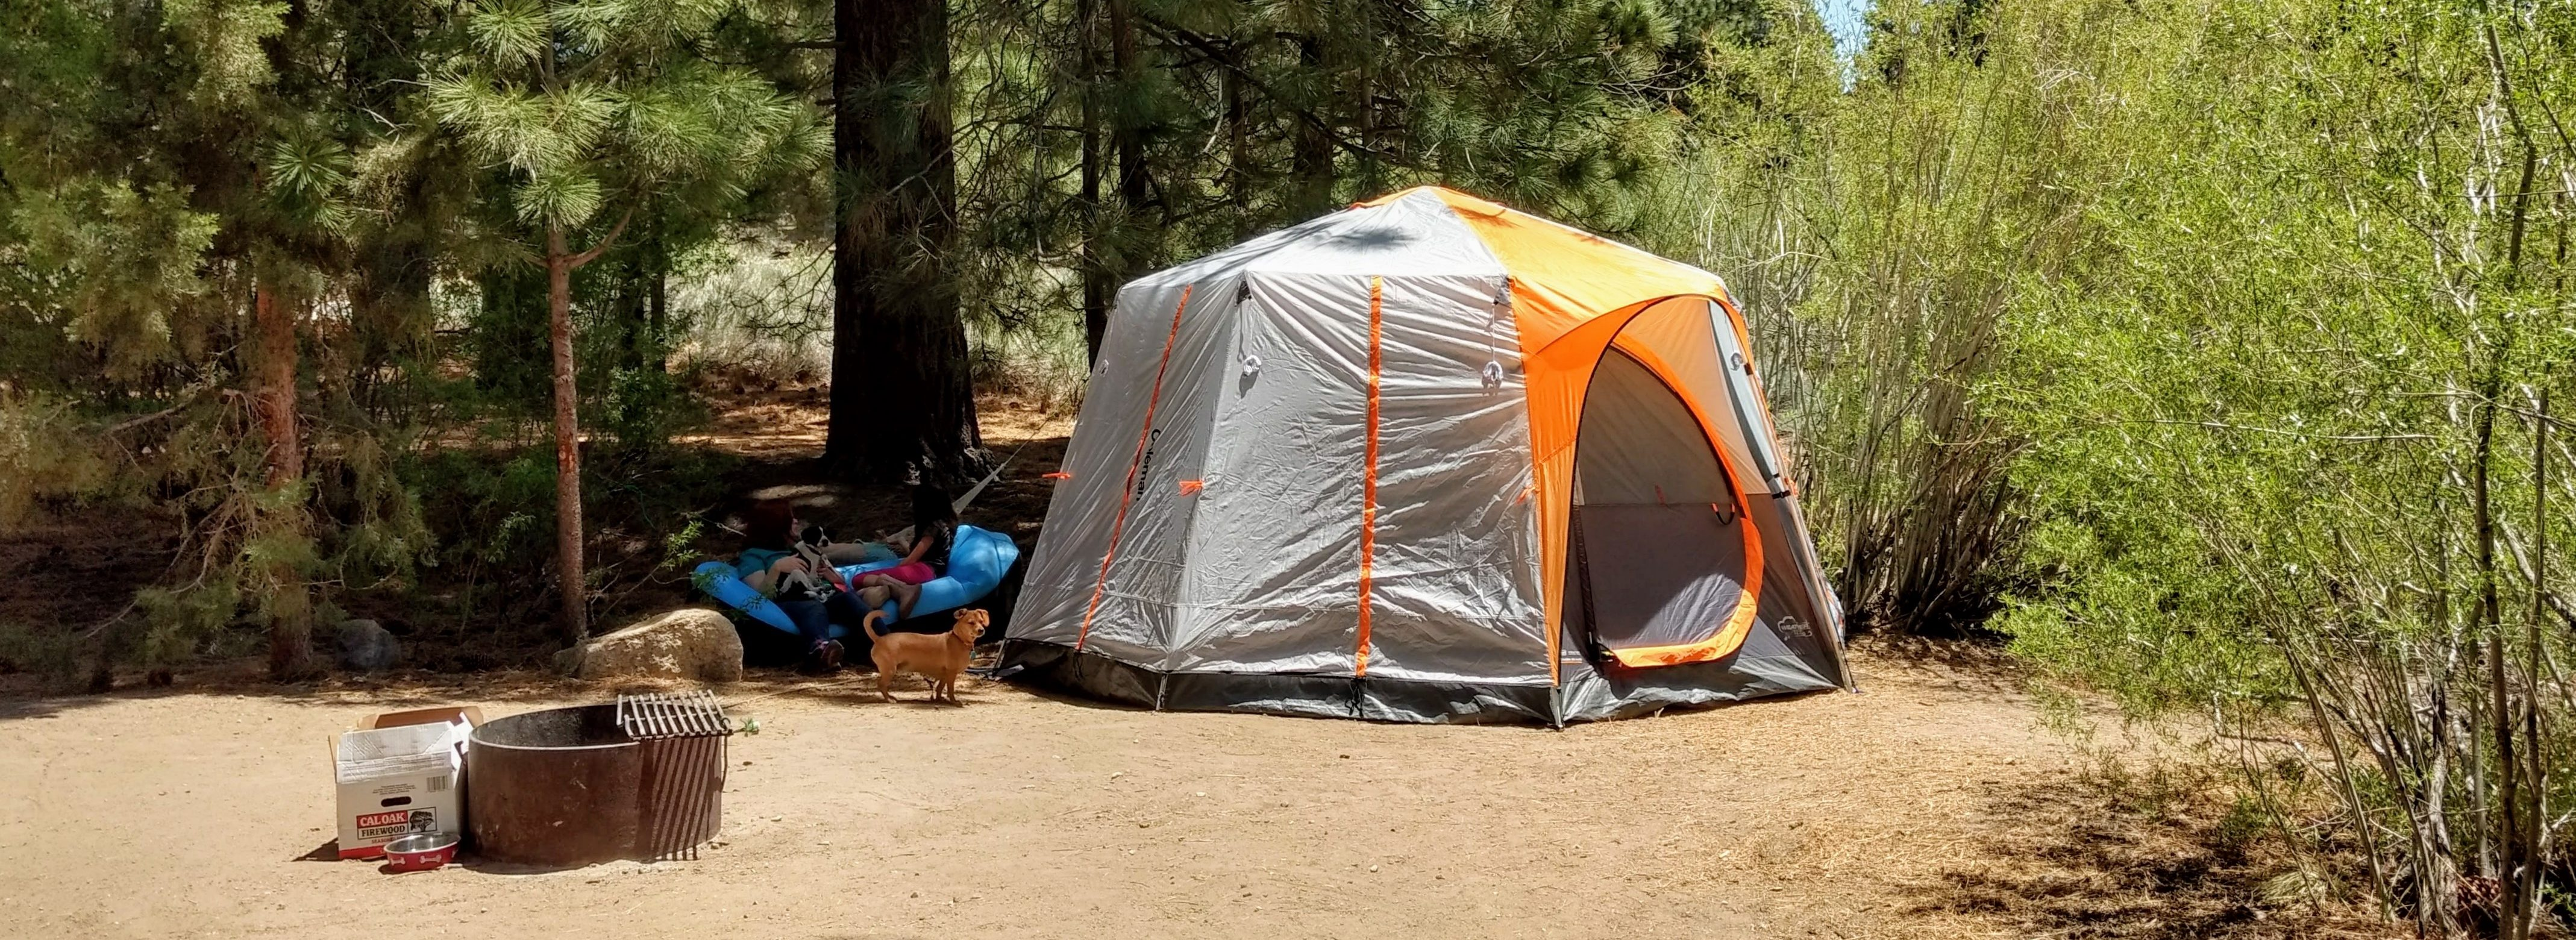 Coleman Octagon 98 Signature Tent & Quest for the Best Family Tents of 2018 u2013 Twisted Bezel